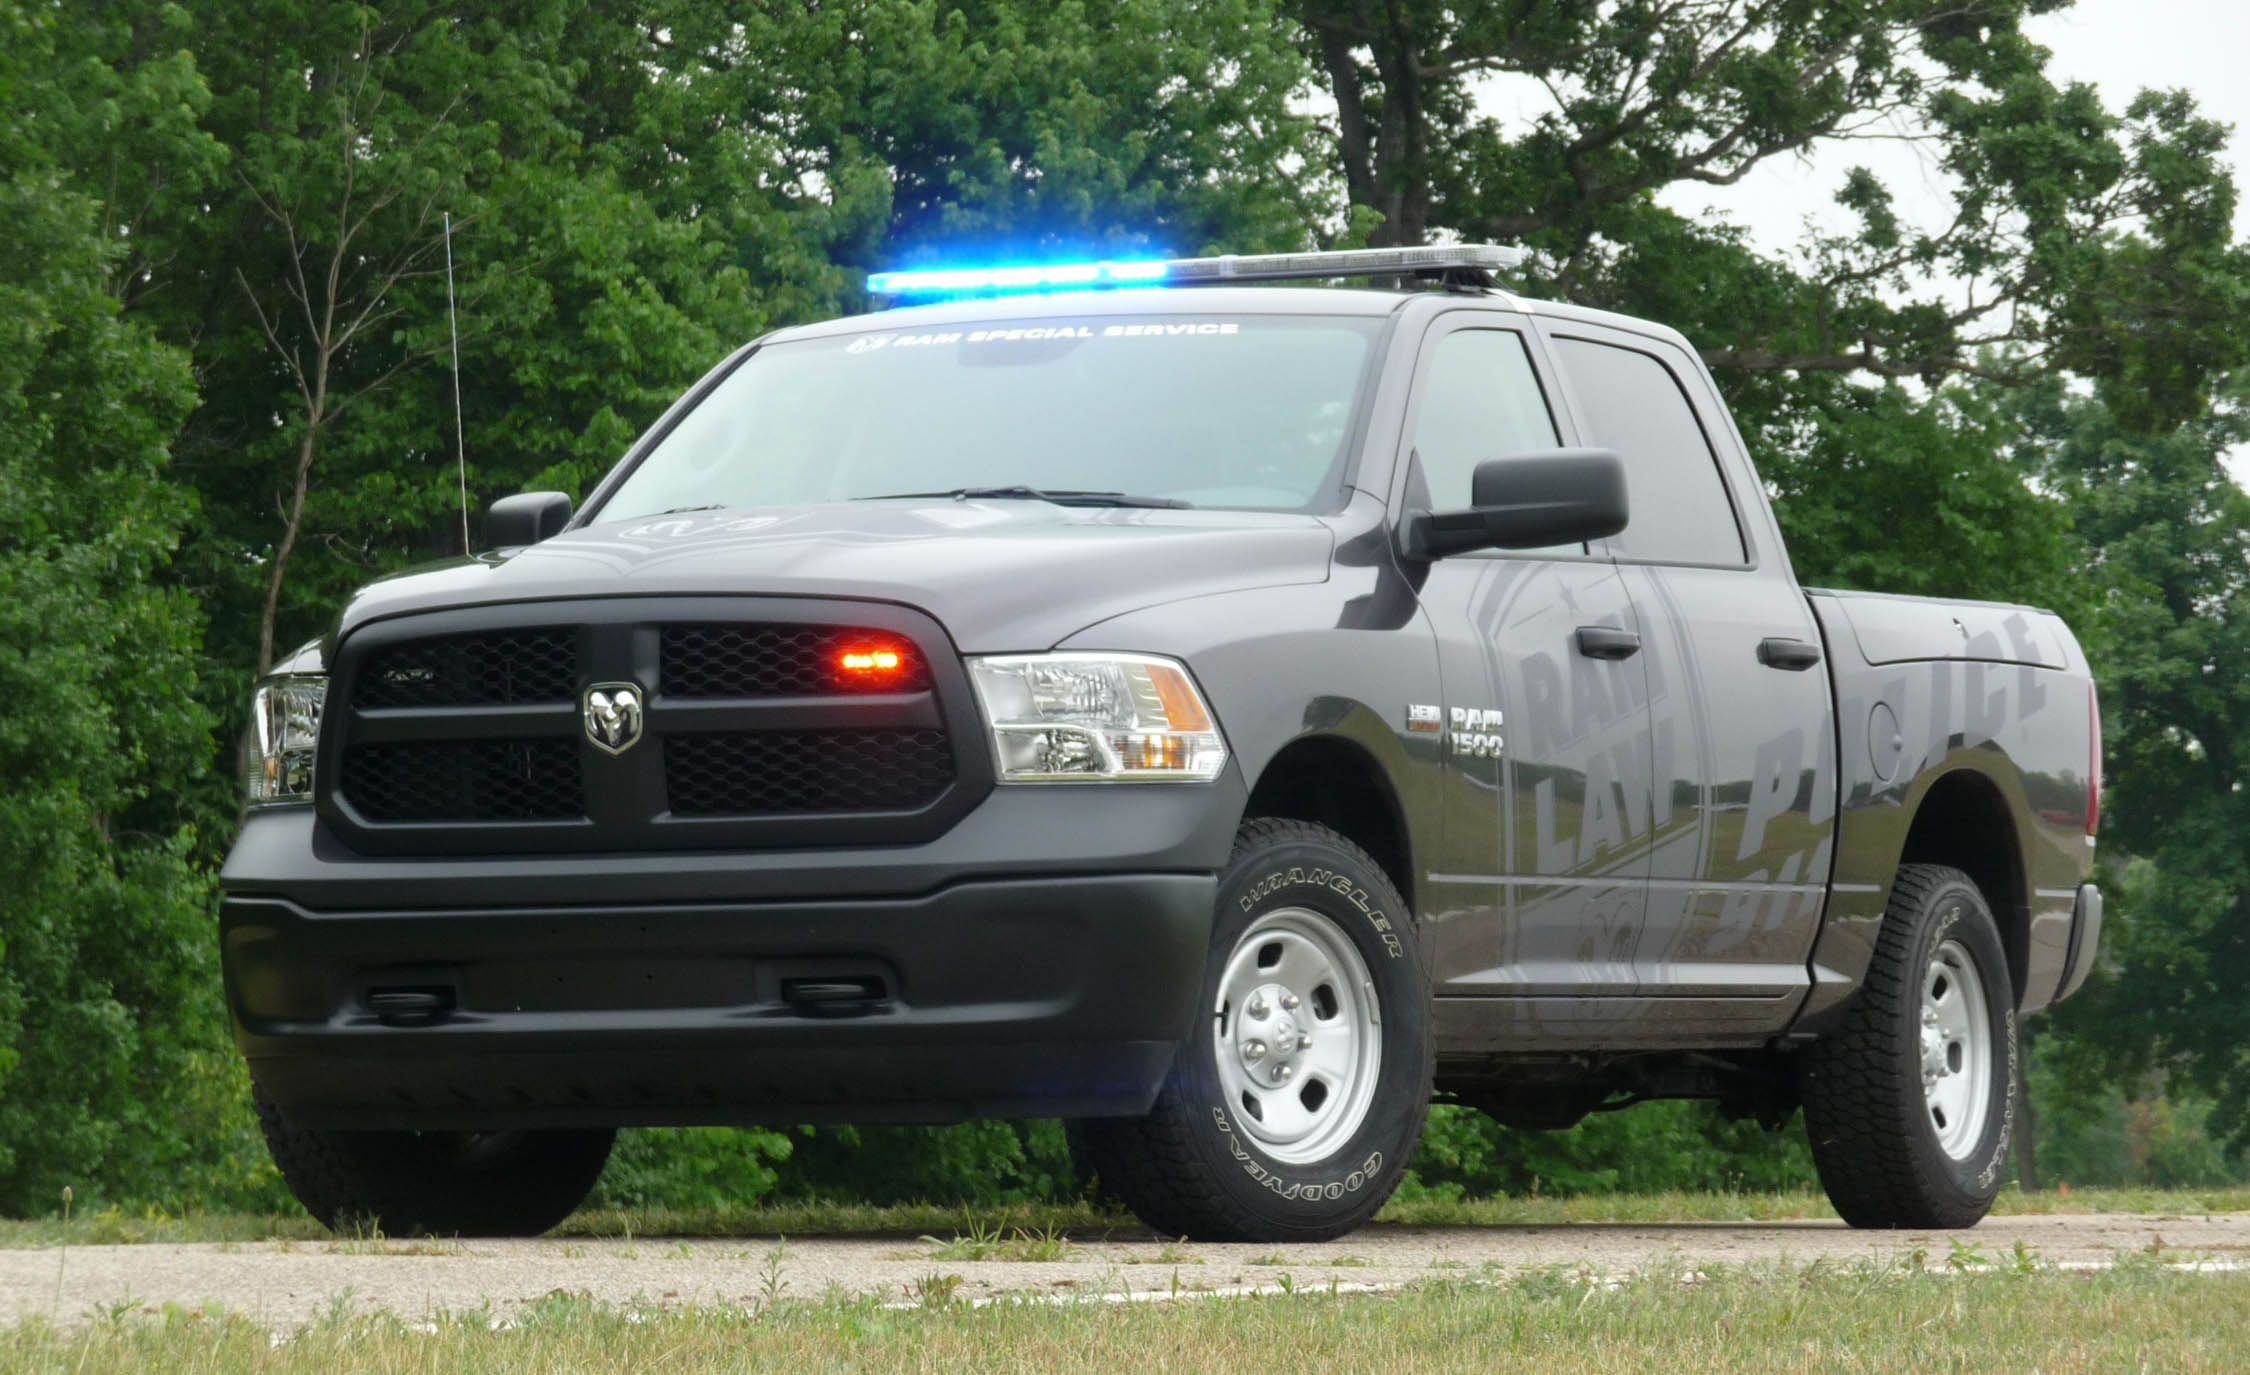 Ram 1500 Ssv Police Pickup Truck Full Test Review Car And Driver 2014 Dodge Back Up Camera Wiring Diagram Yes The Cop Version